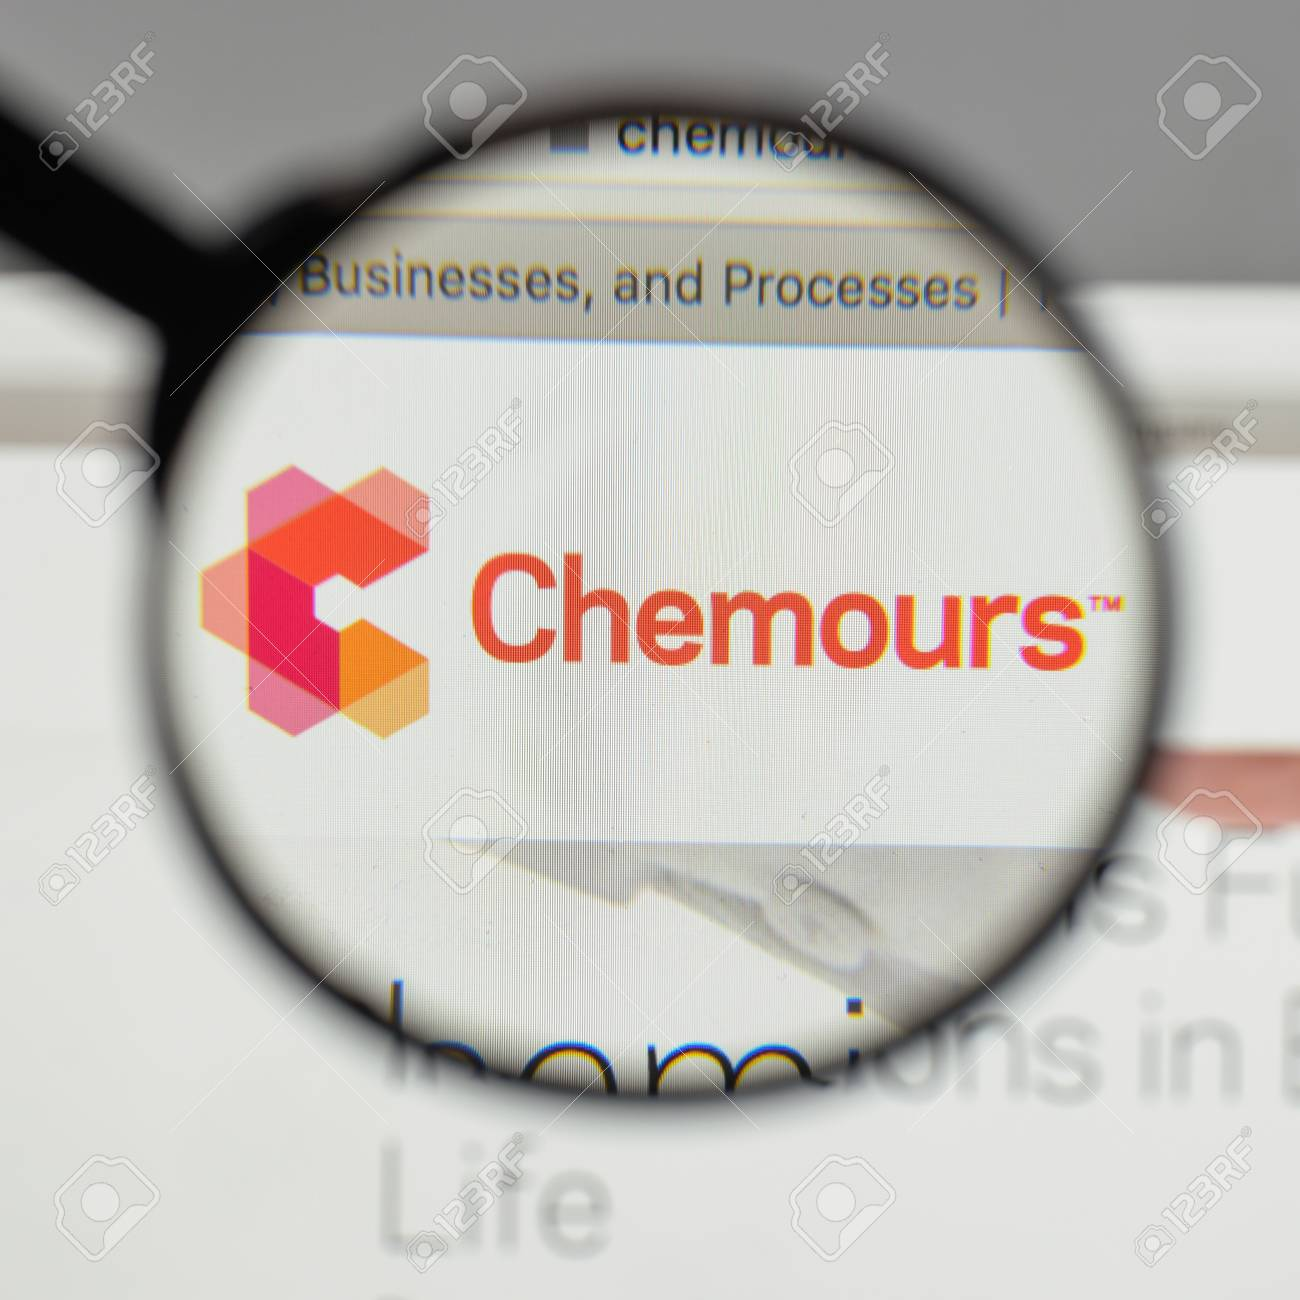 Milan, Italy - August 10, 2017: Chemours logo on the website